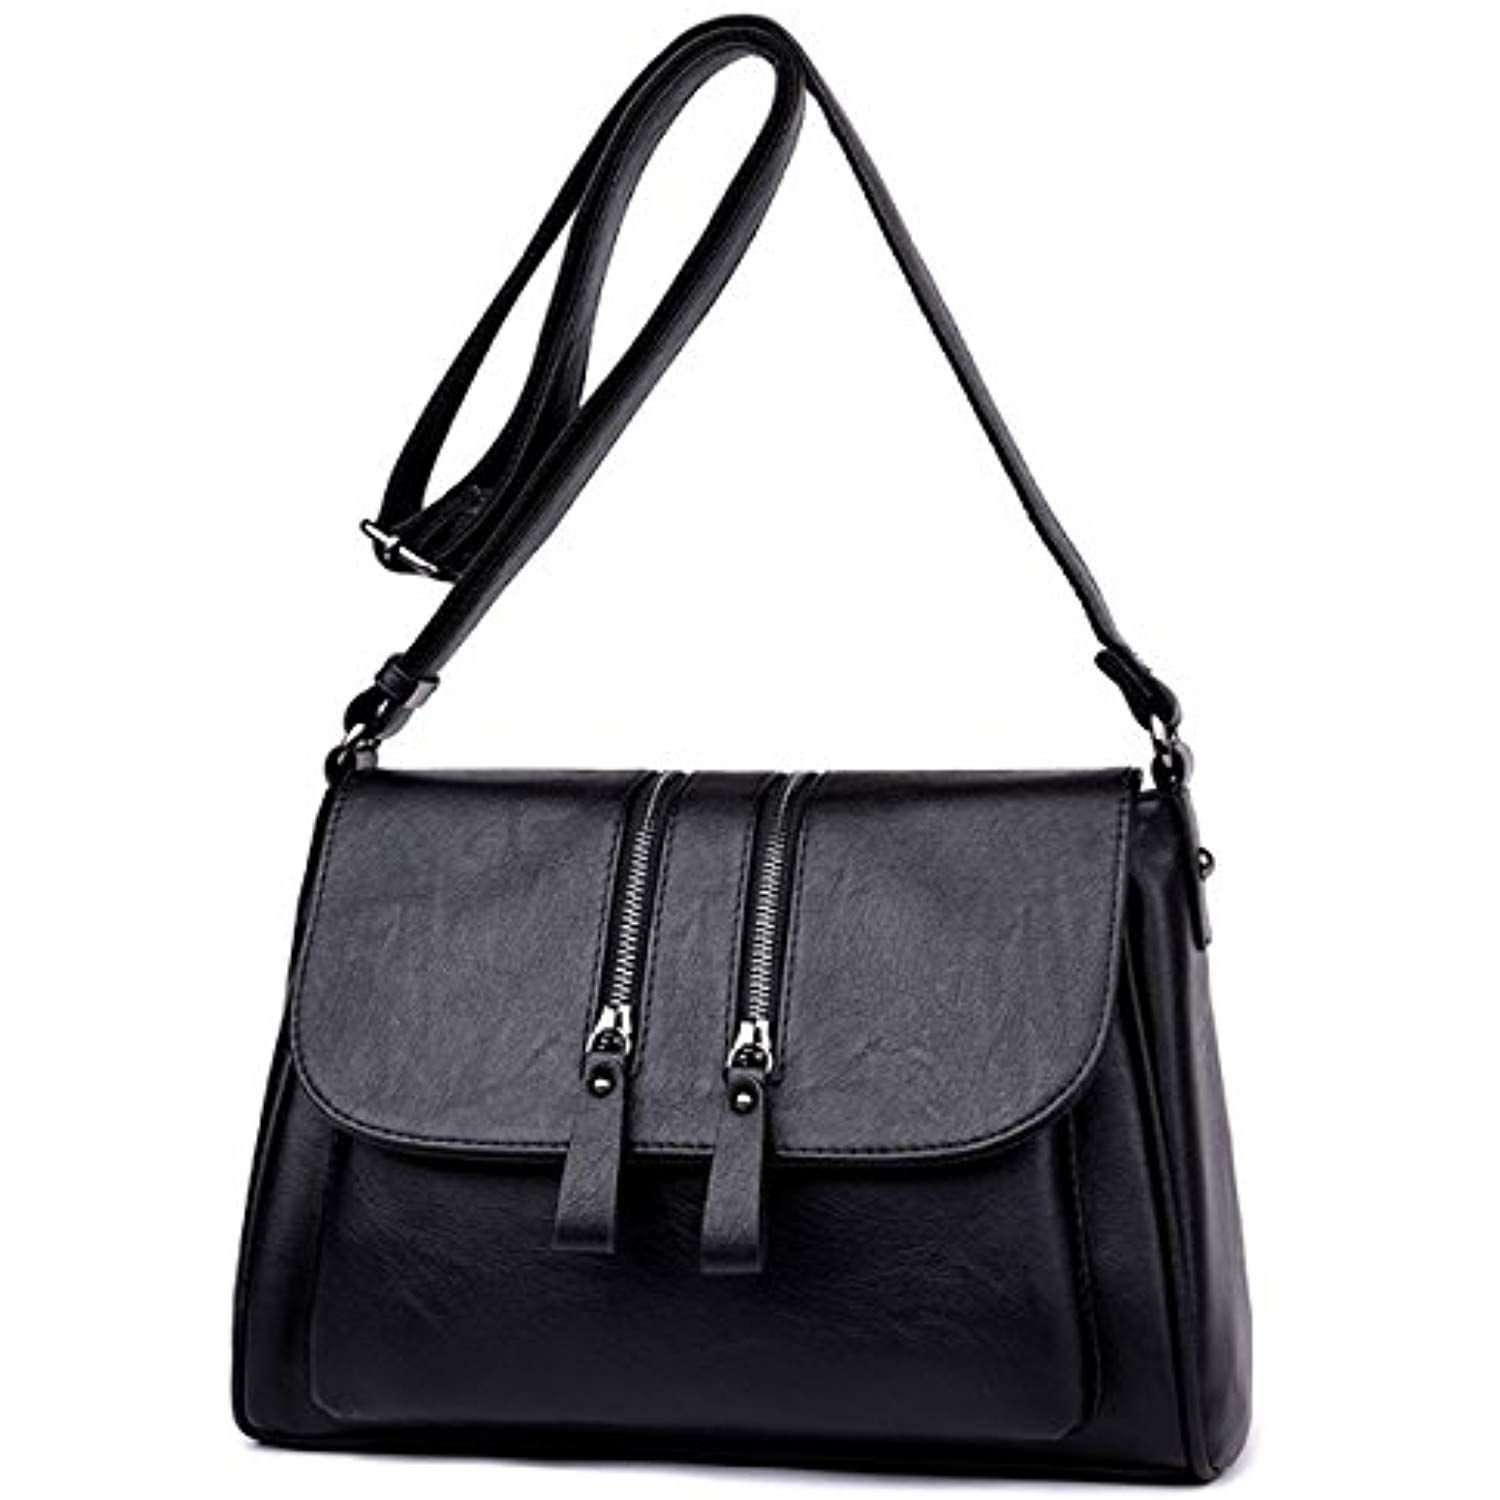 PU Faux Leather Multipocket Crossbody Bag - Fashion Crossbody Shoulder Bag  Chic Purse Wallet Handbag for Womens     Check out this great product. c495c29c2b901